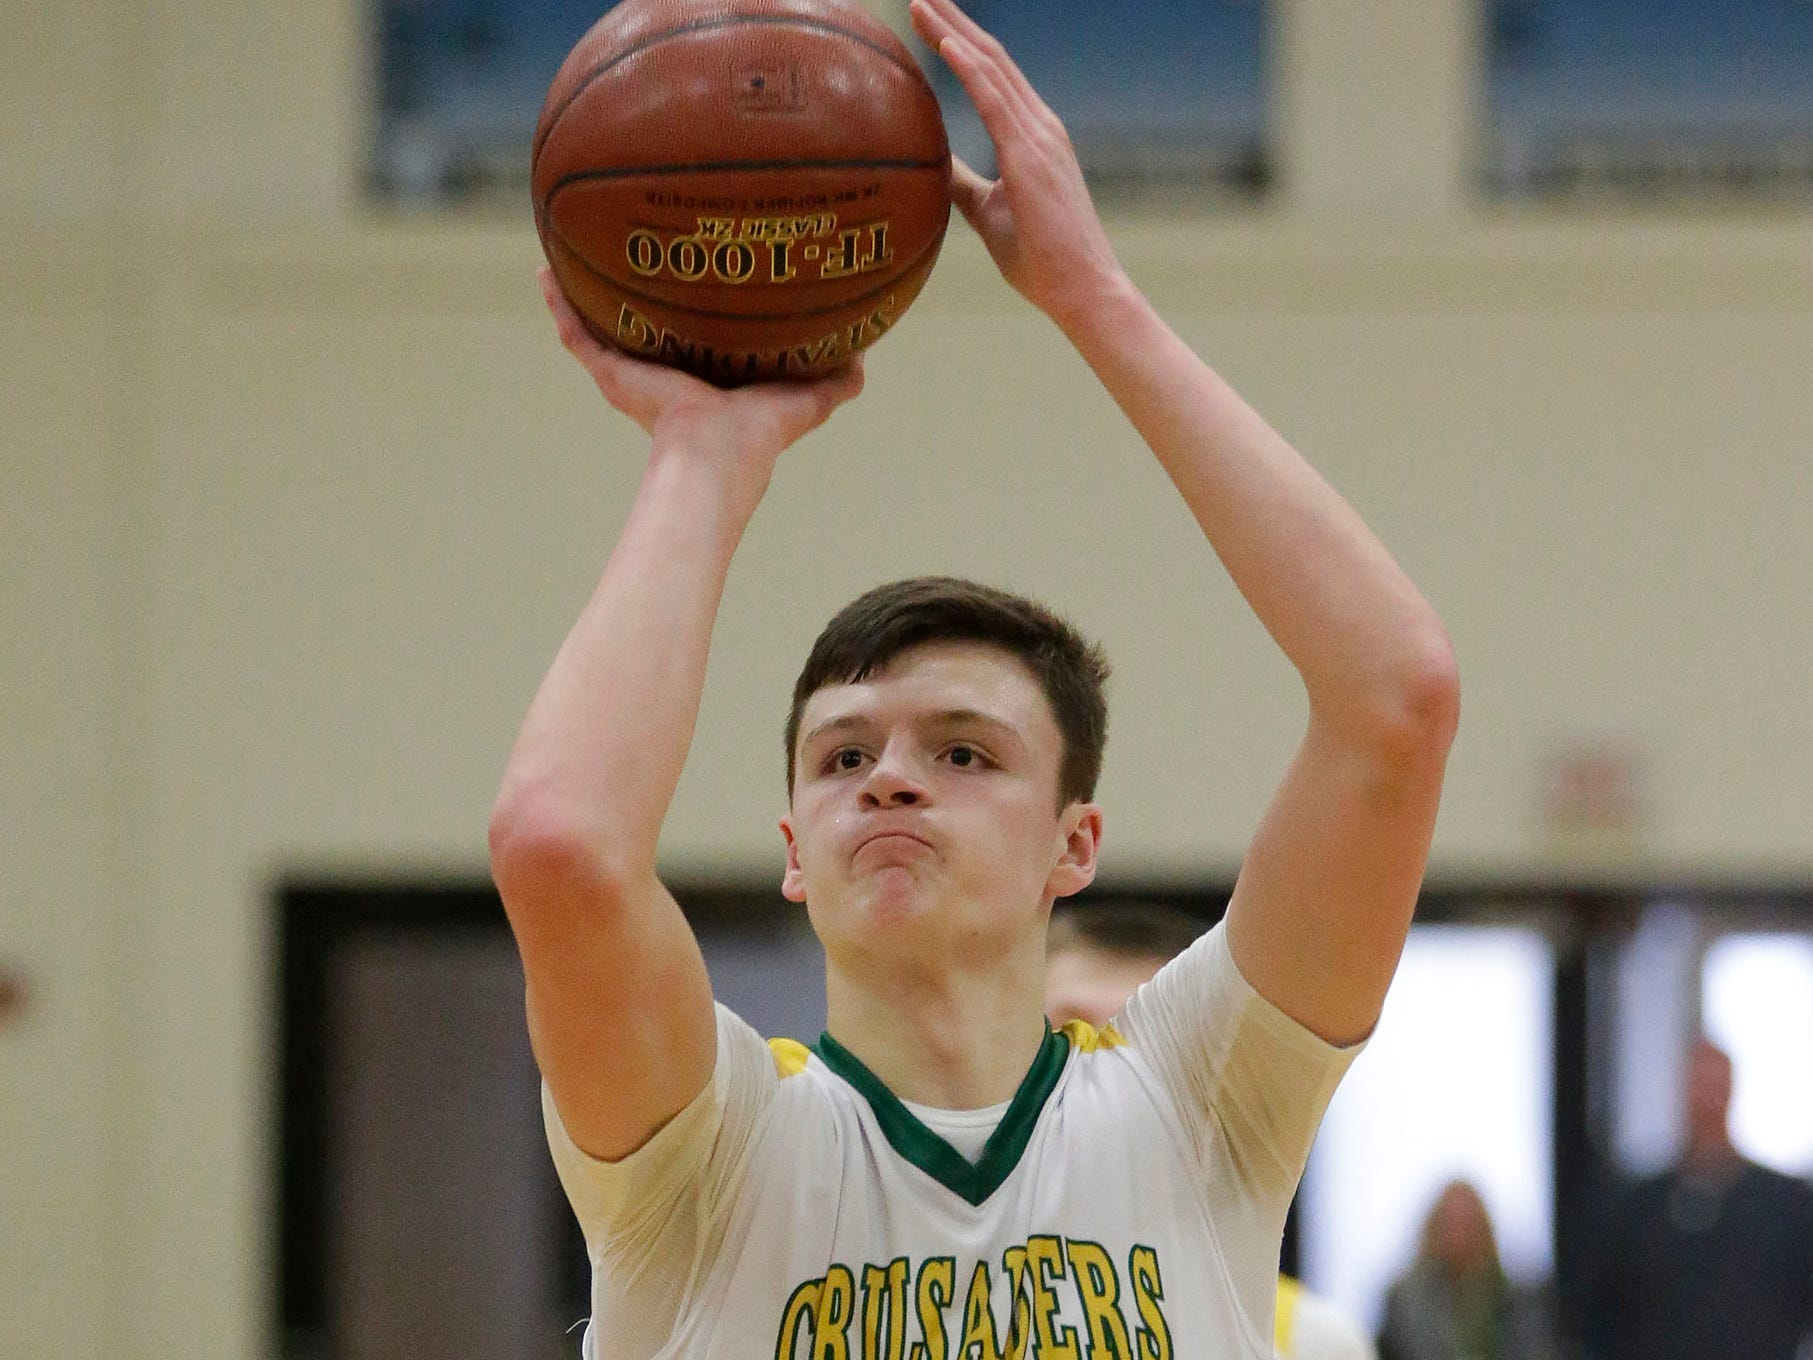 Sheboygan Lutheran's Jacob Ognacevic (23) aims free throw against Rio, Saturday, March 9, 2019, in West Bend, Wis.